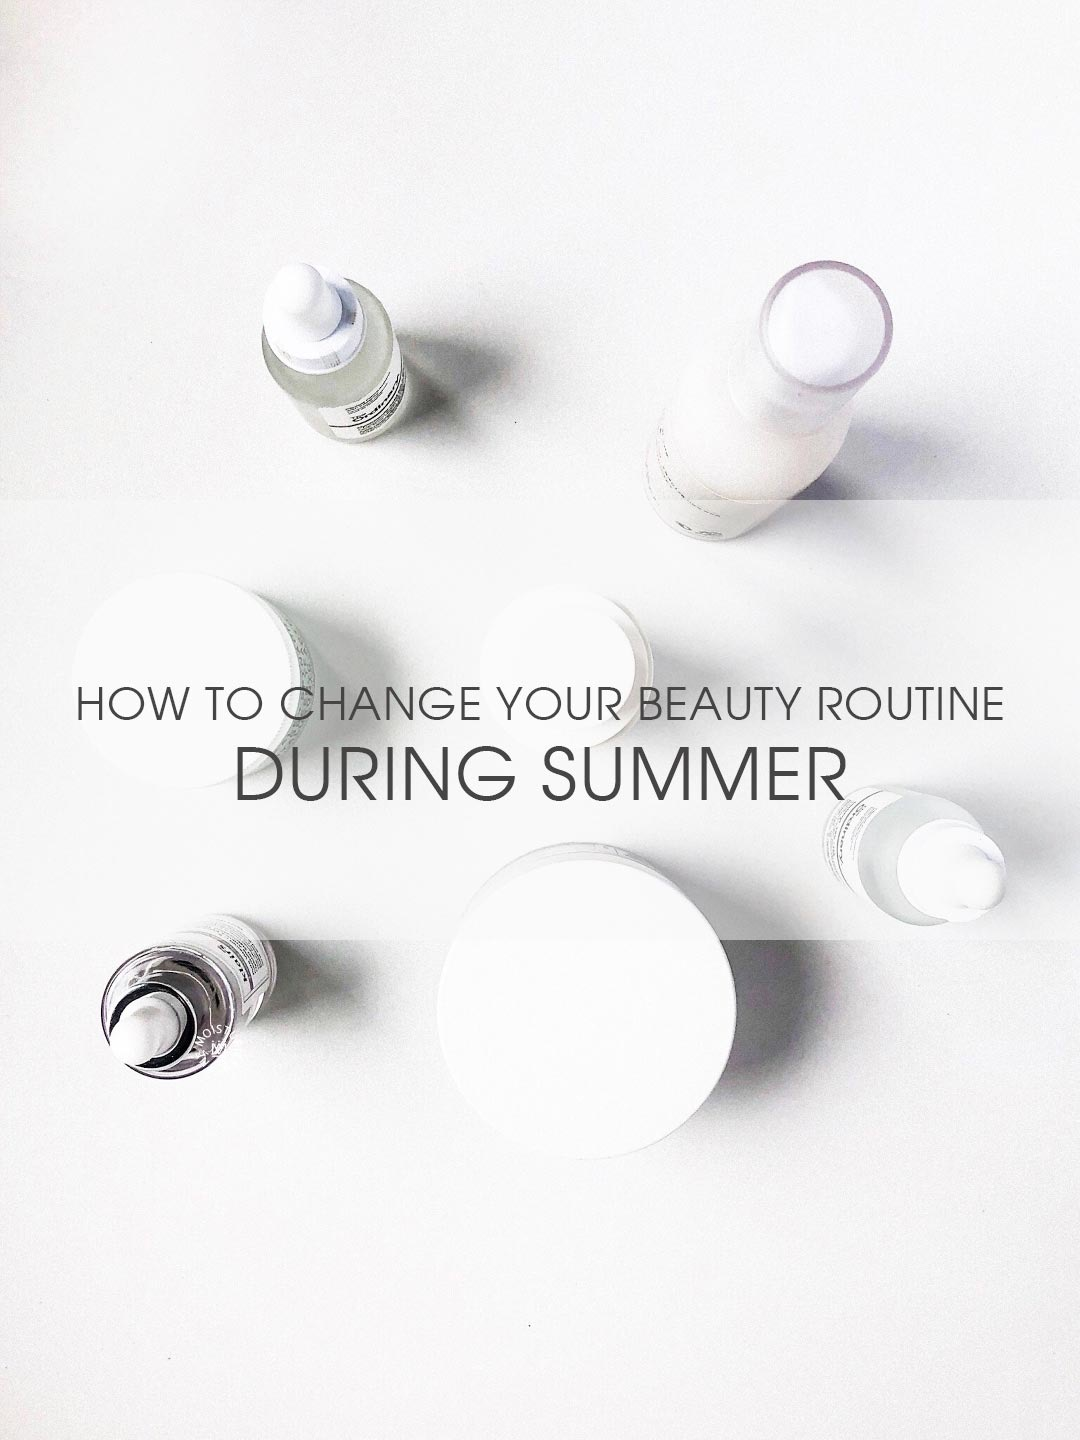 The Moisturizer - How to change your skincare routine during summer